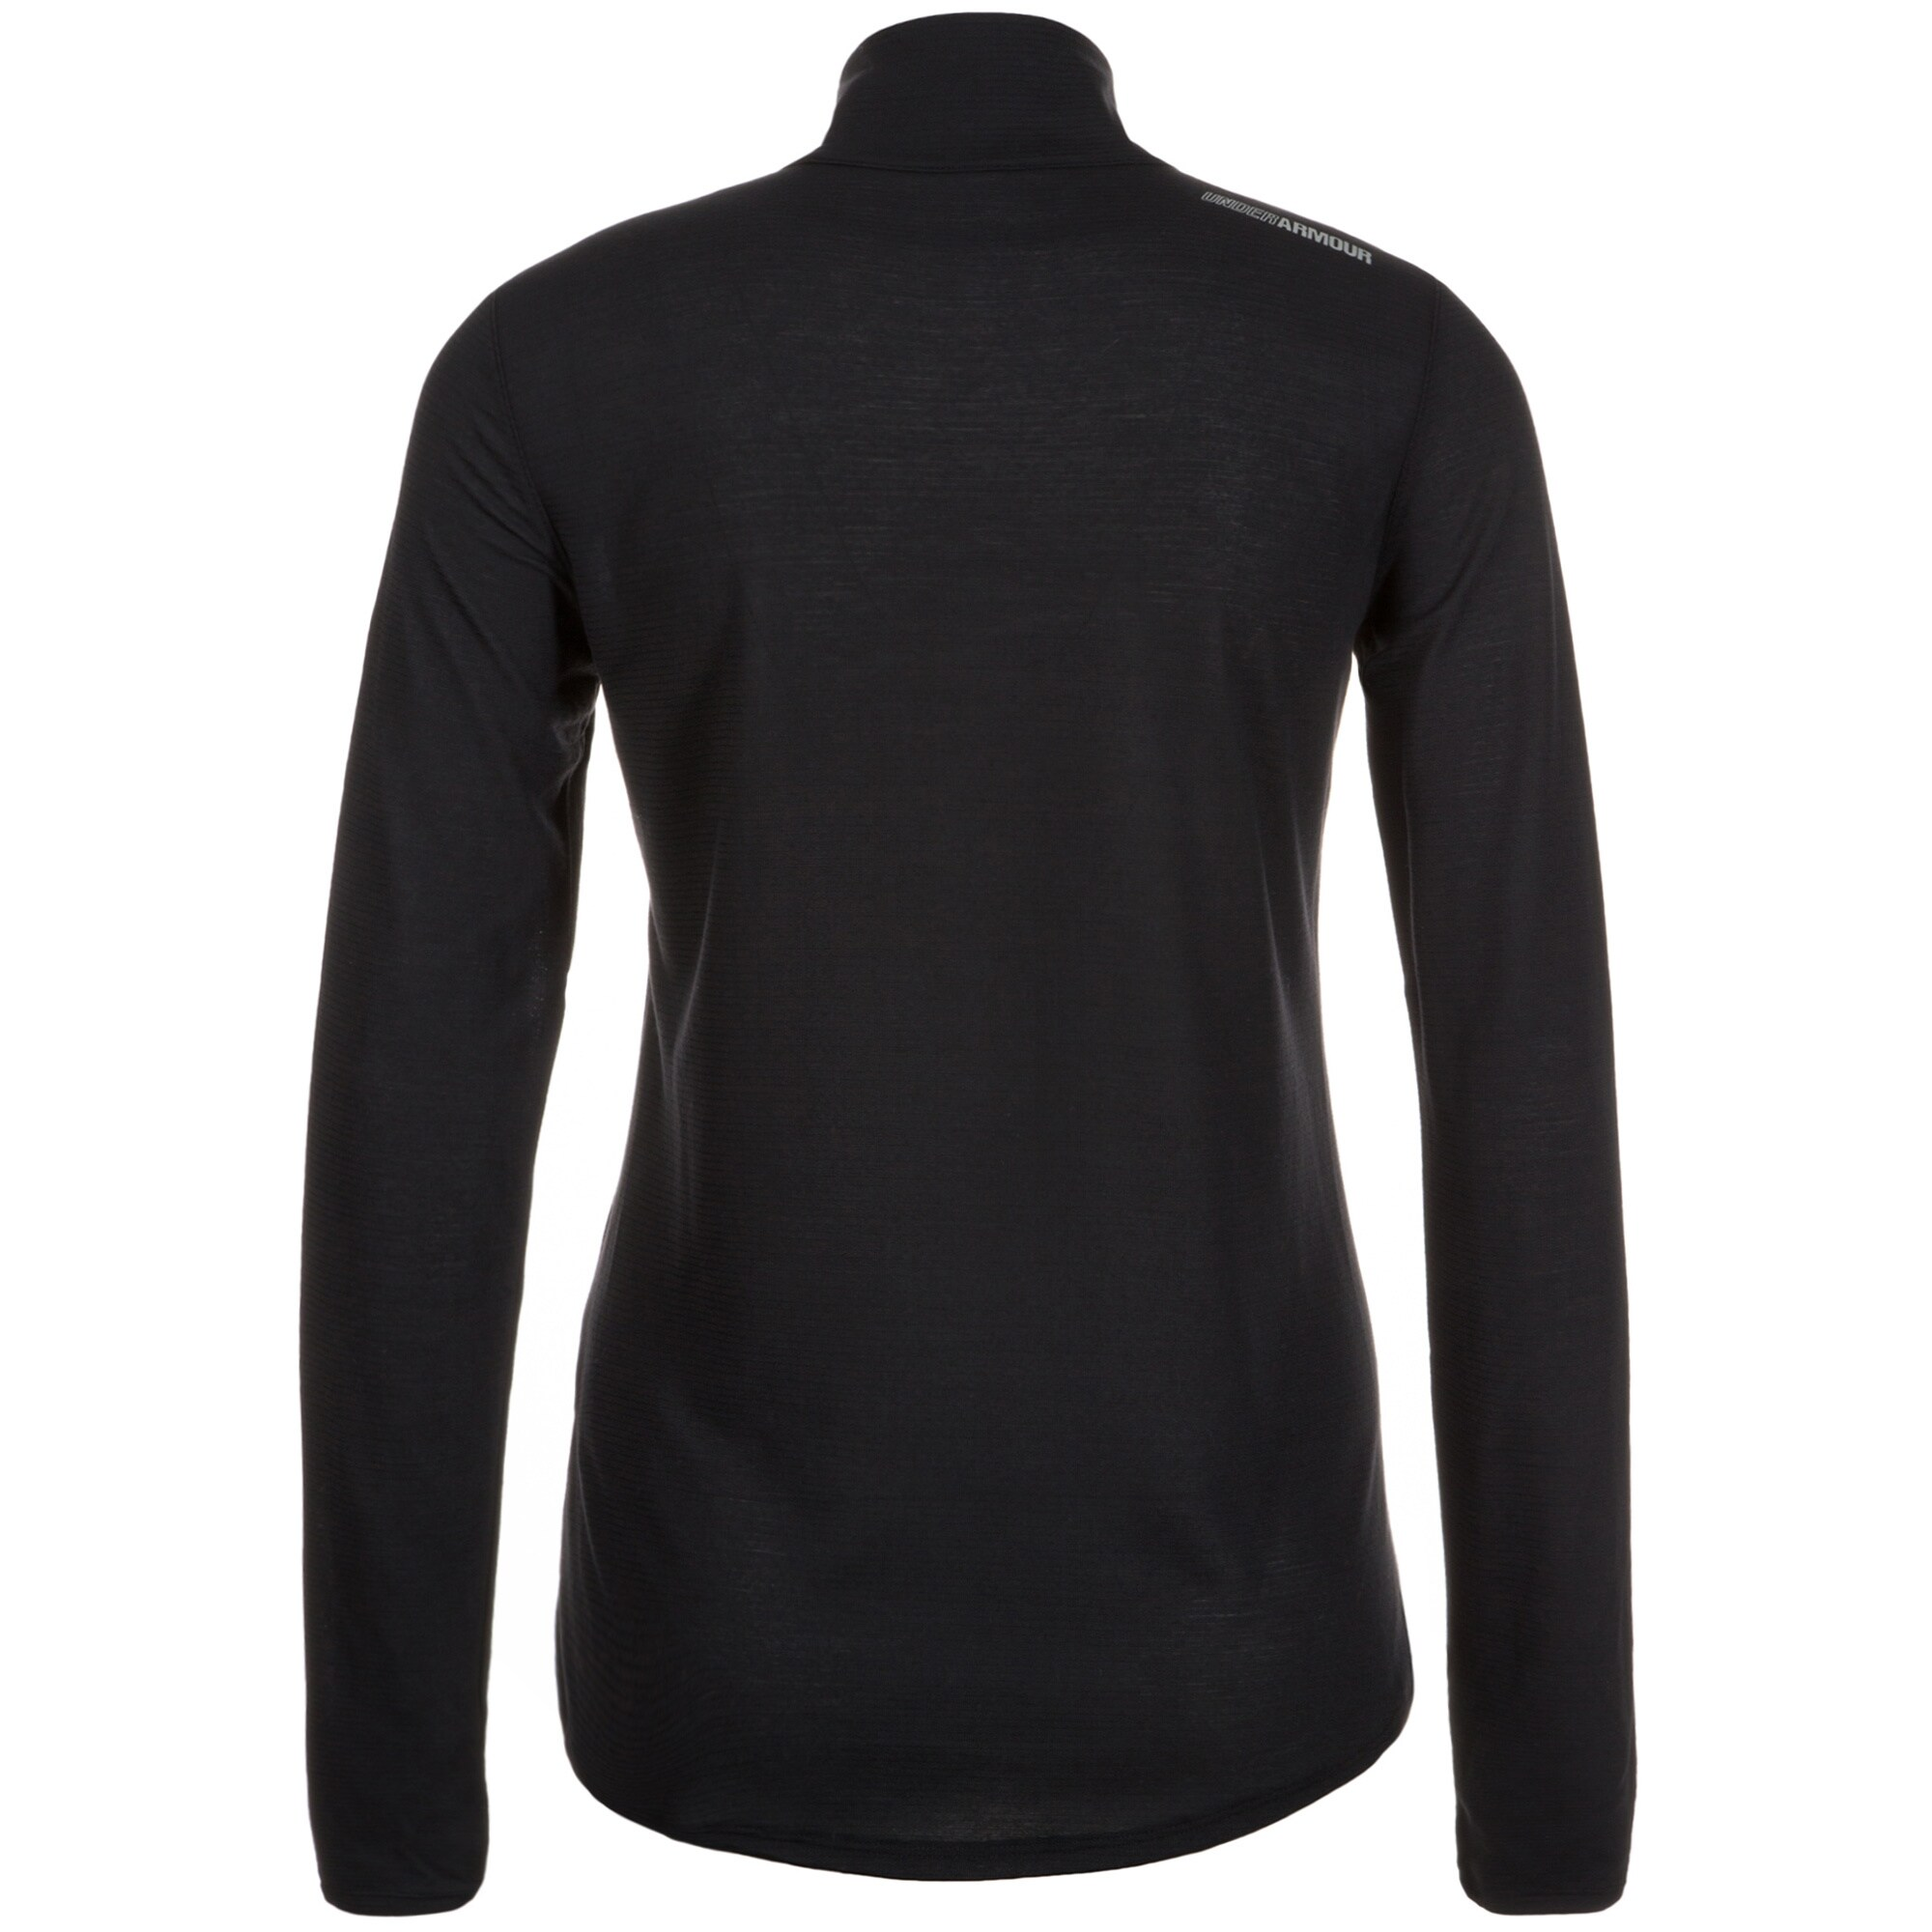 UNDER ARMOUR, Dames Functioneel shirt, zwart